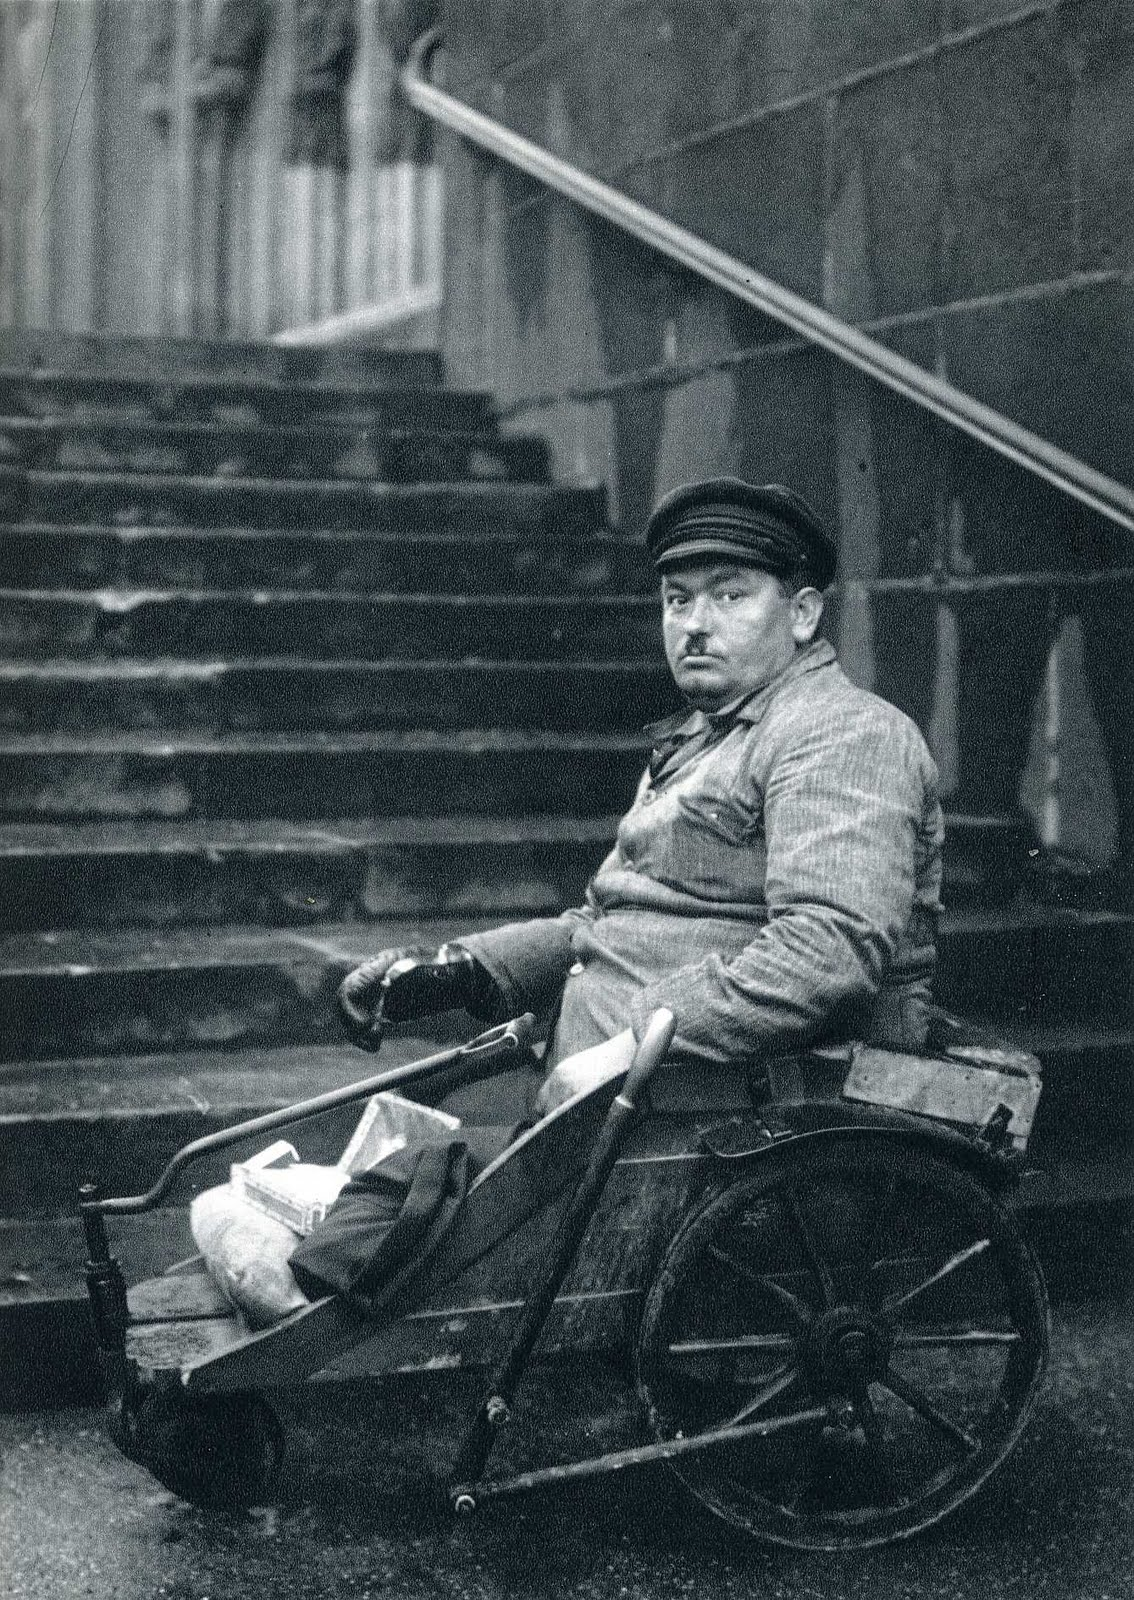 THE PHOTOGRAPHY FILES: August Sander | 1134 x 1600 jpeg 530kB